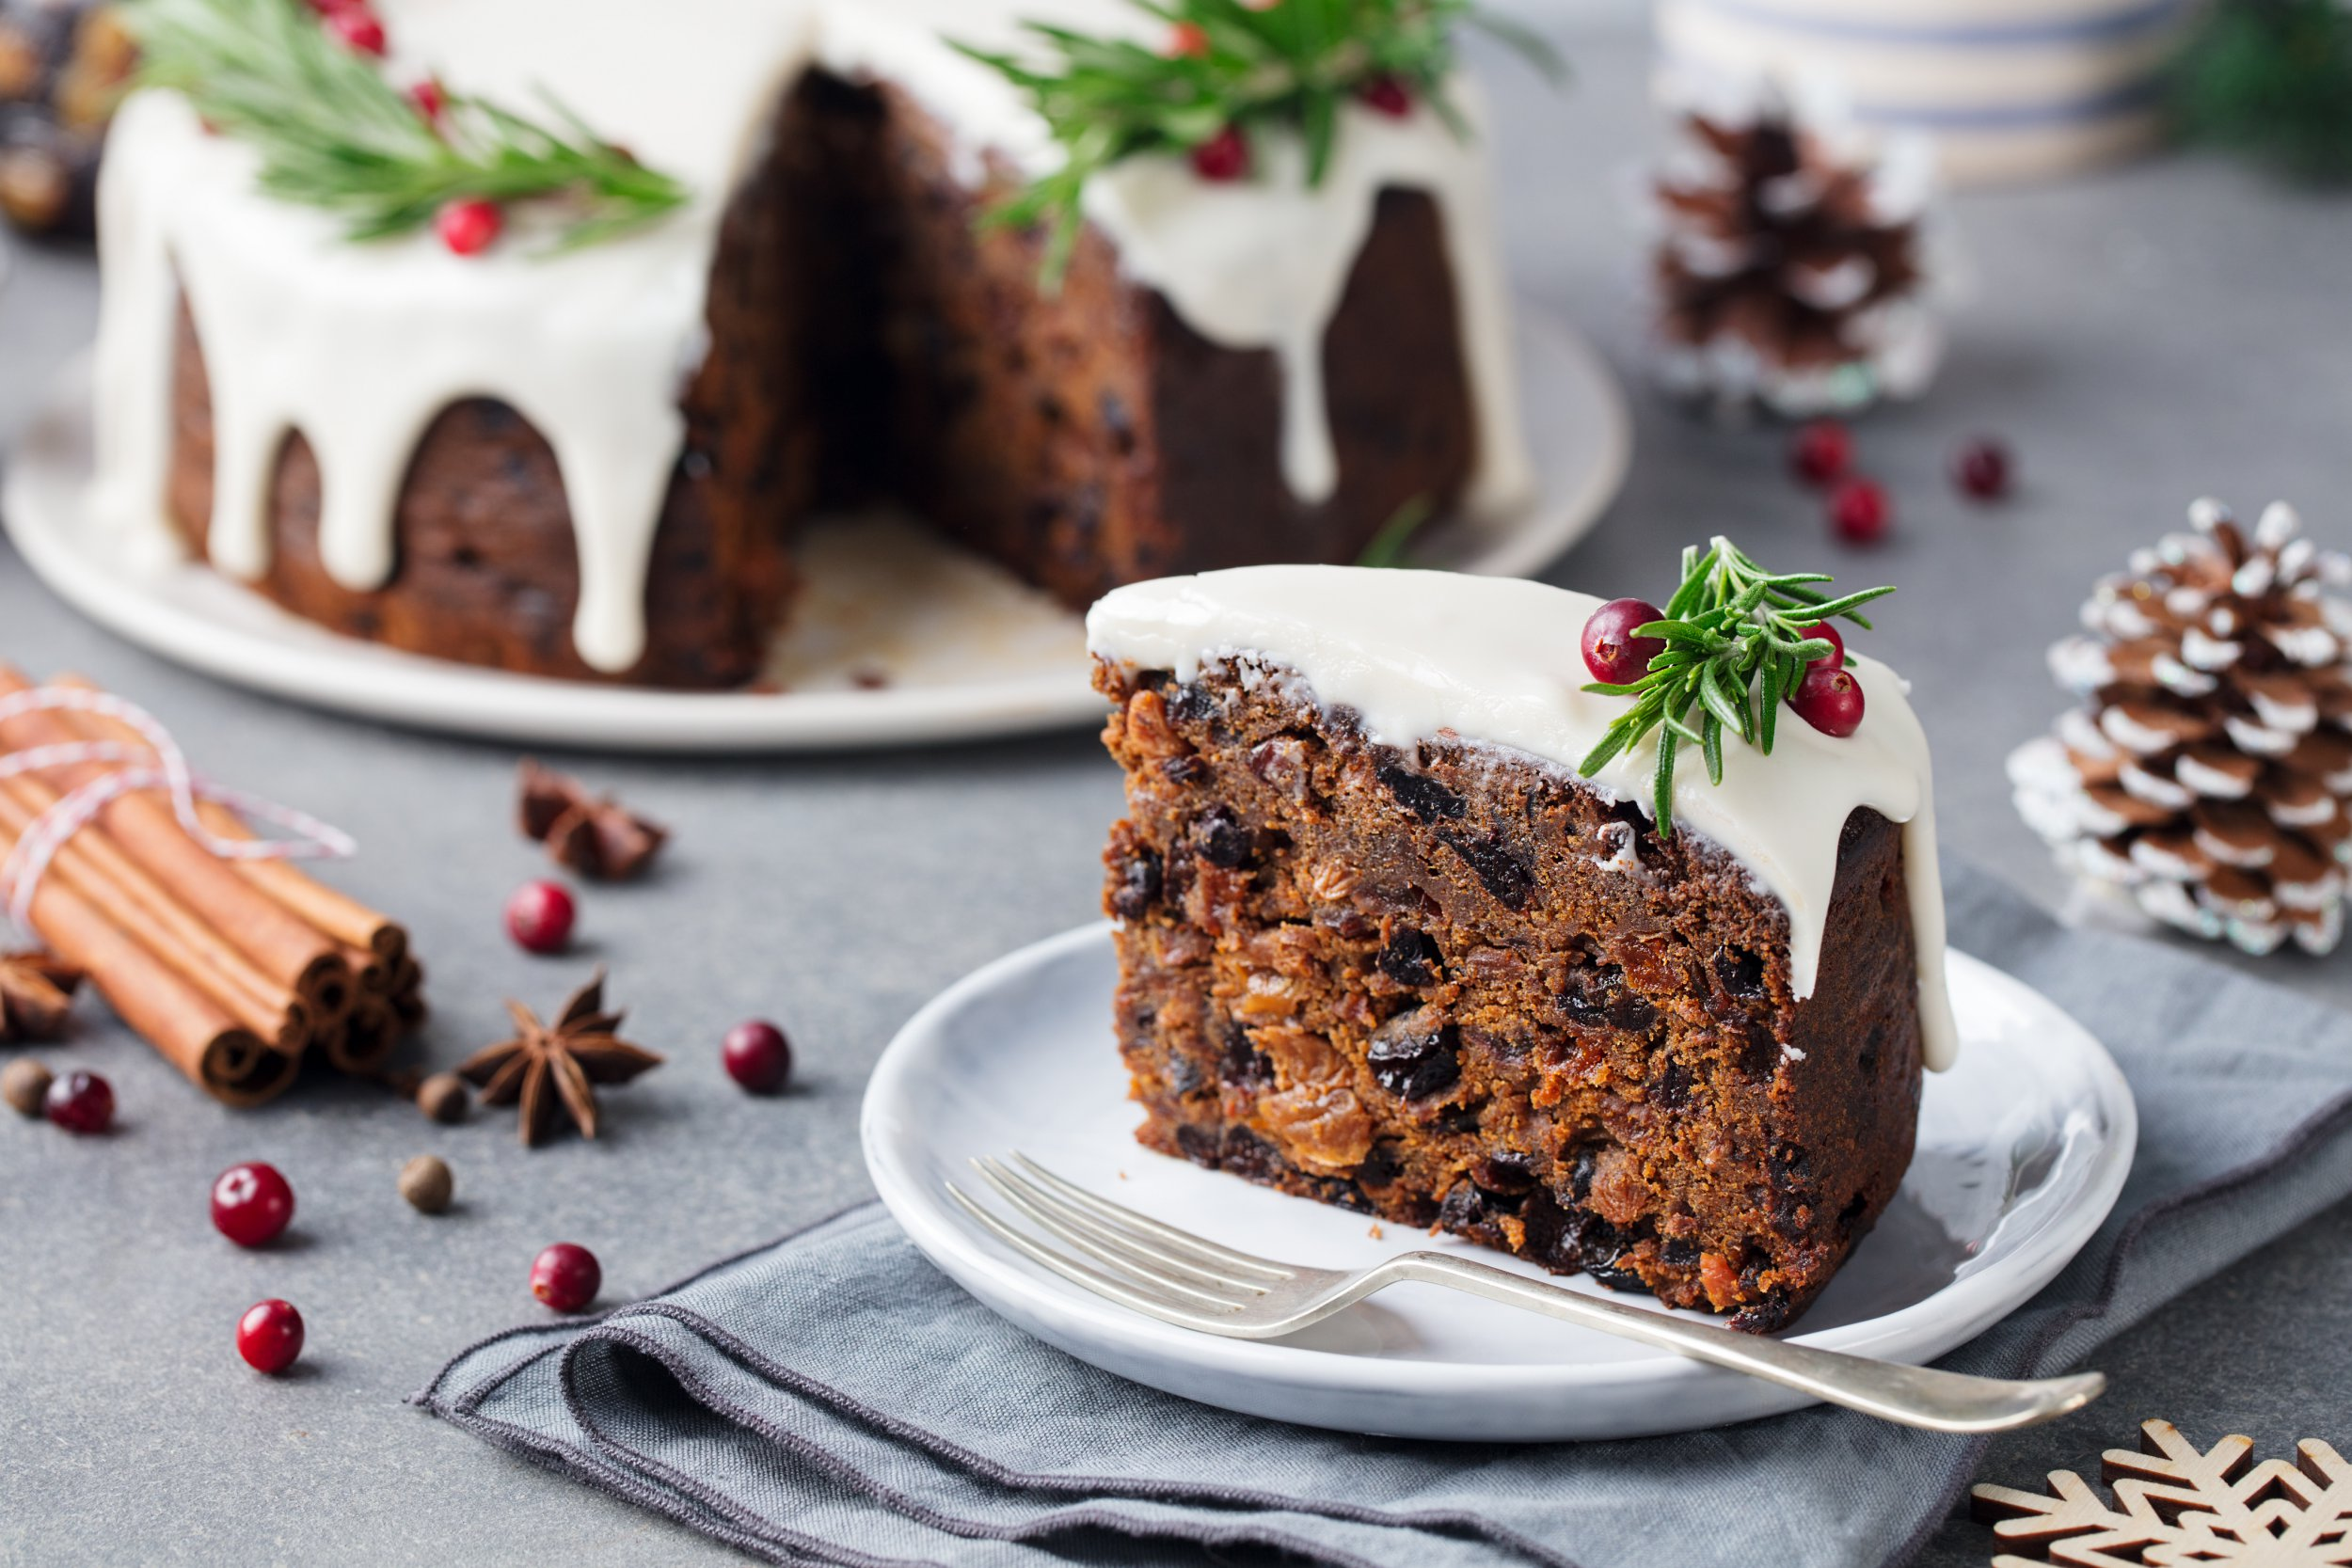 Christmas fruit cake, pudding on white plate. Christmas decoration. Close up.; Shutterstock ID 530890891; Purchase Order: -